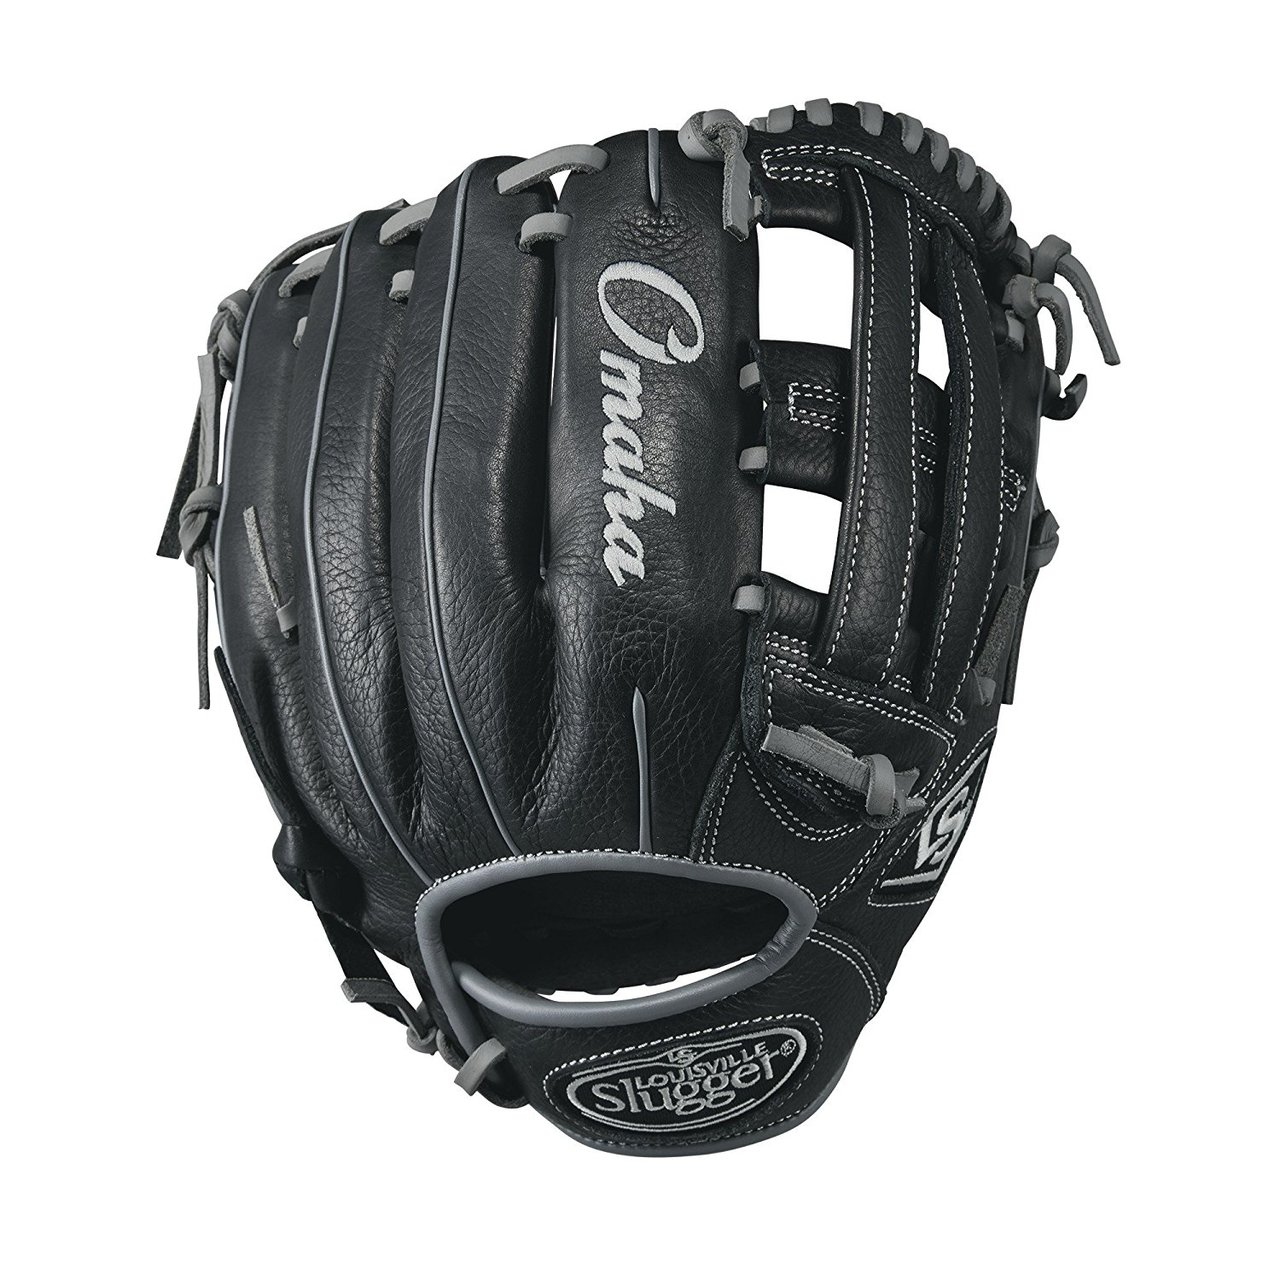 louisville-slugger-omaha-11-5-inch-wtlomrb17115-baseball-glove-right-hand-throw LOMRB17115-RightHandThrow  887768498542 11.5 infield WTLOMRB17115 Dual post web pattern Soft full-grain Steerhide leather